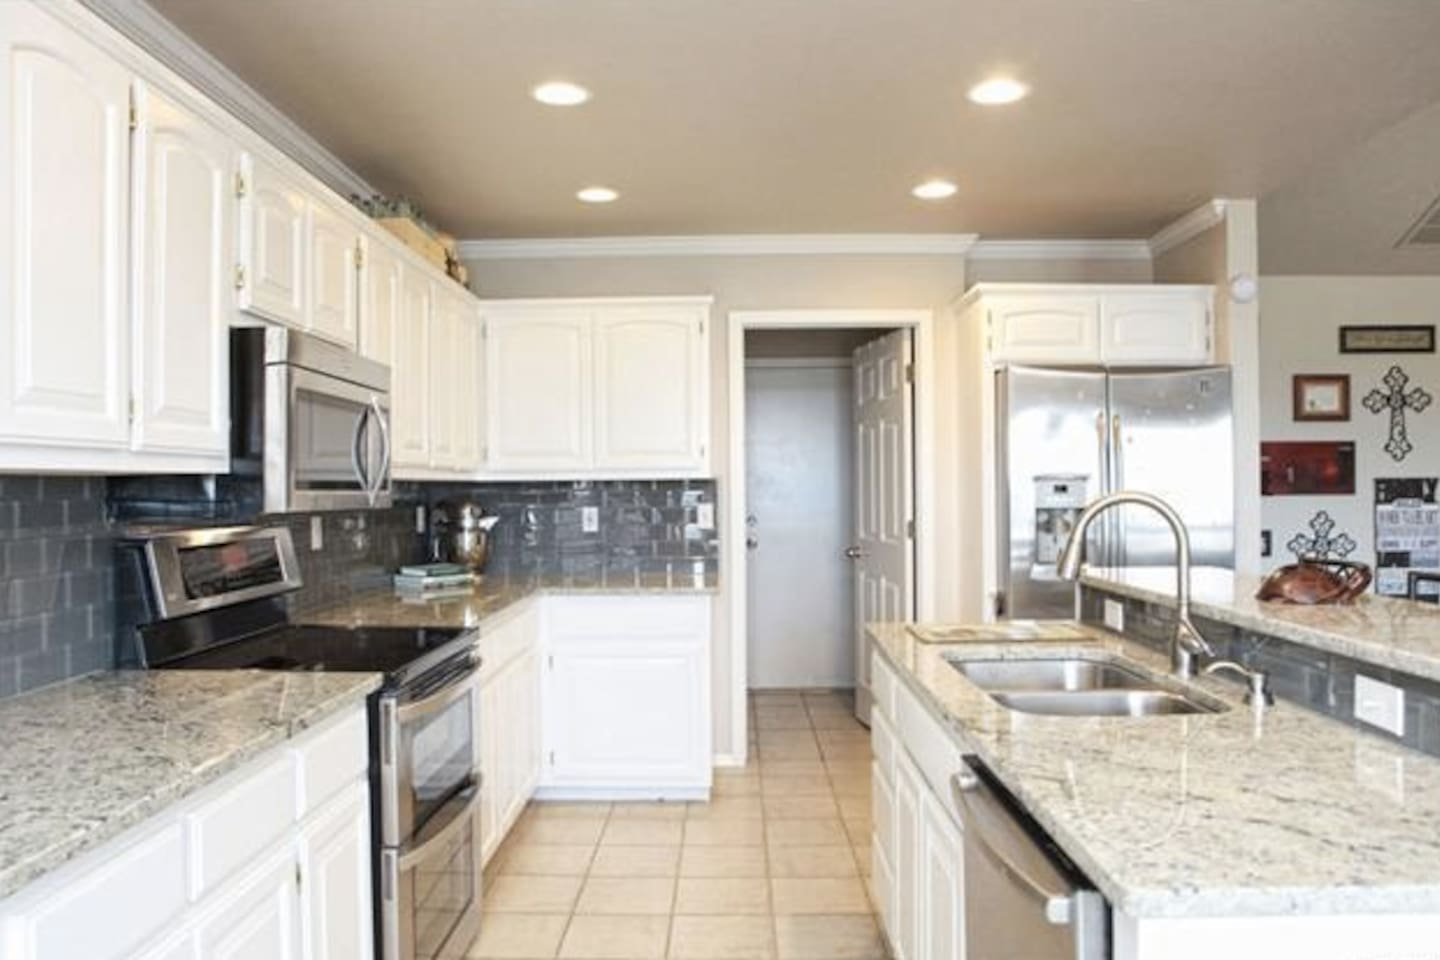 Updated granite kitchen and stainless steel appliances. Hope you enjoy as much as we do! Large fridge to hold items from eating out for your convenience. Large pantry through door to keep any non-perishables as well.